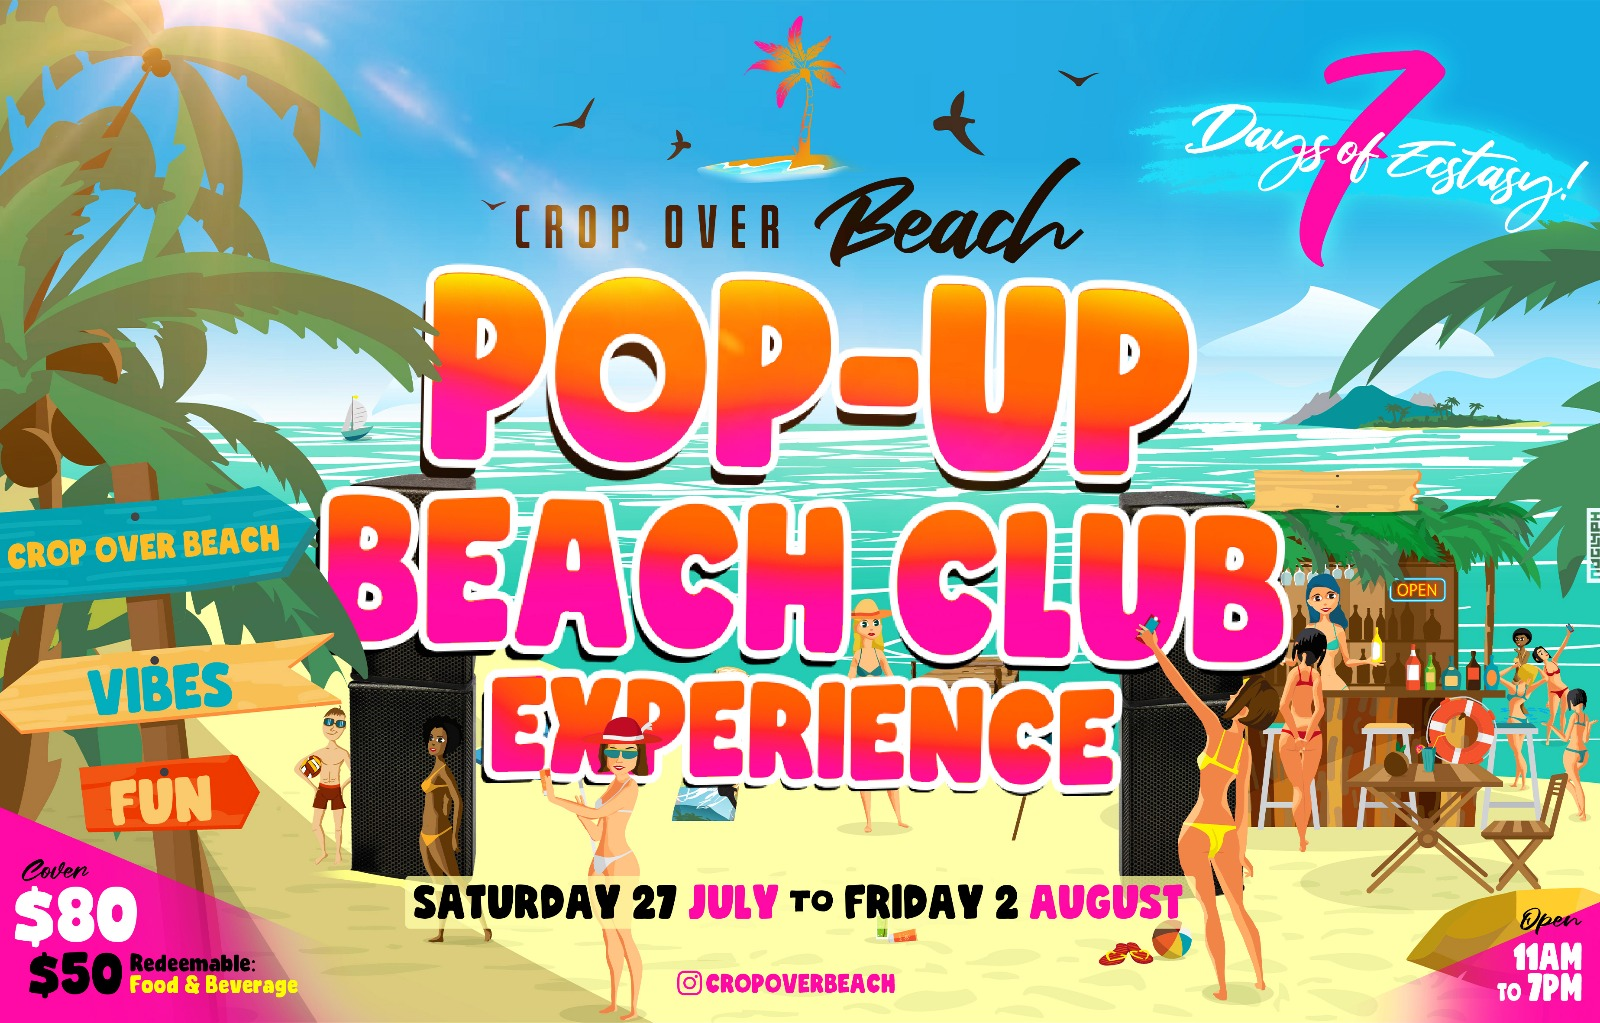 CropOverBeach-4 days of Ecstasy-PopUp Beach Club Experience - Day 1@ Blue Pineapple